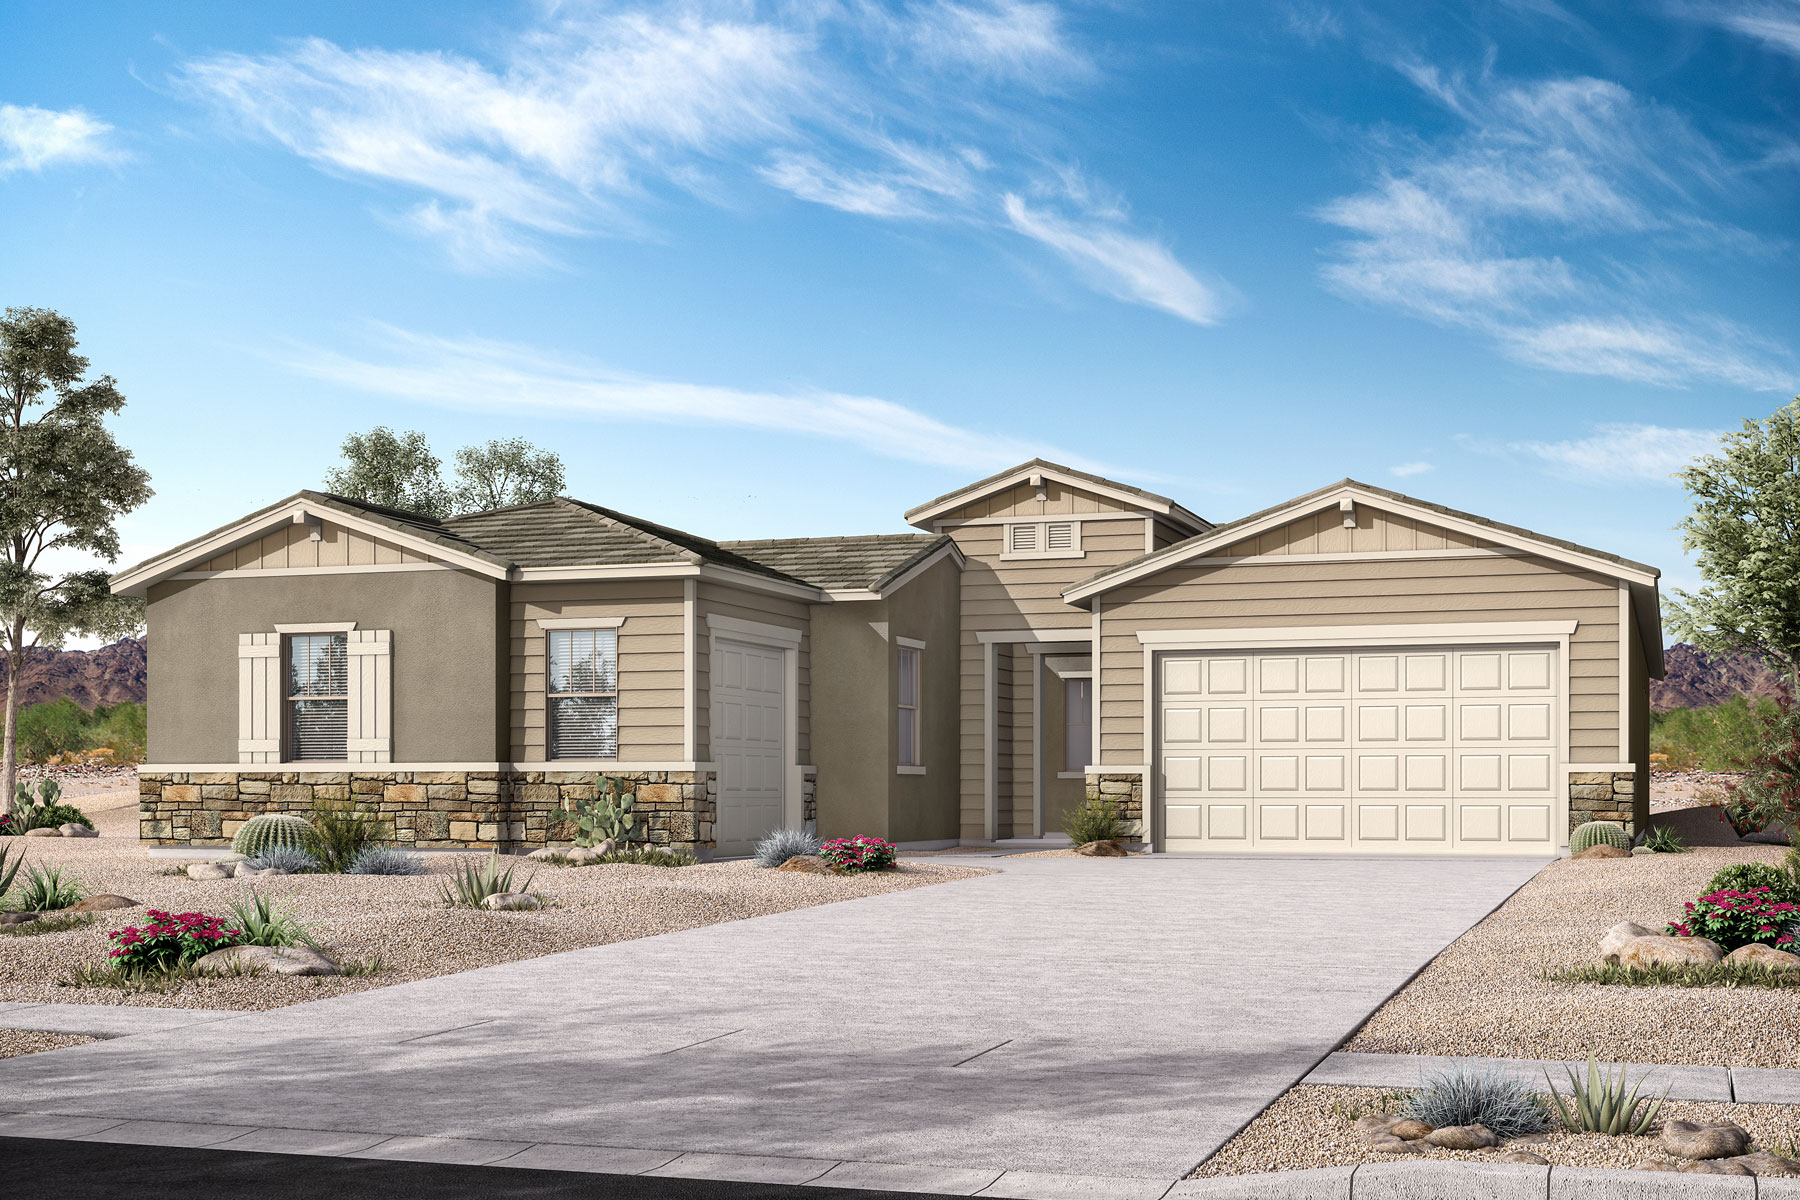 Castleton Plan Elevation Front at Azure Canyon in Goodyear Arizona by Mattamy Homes